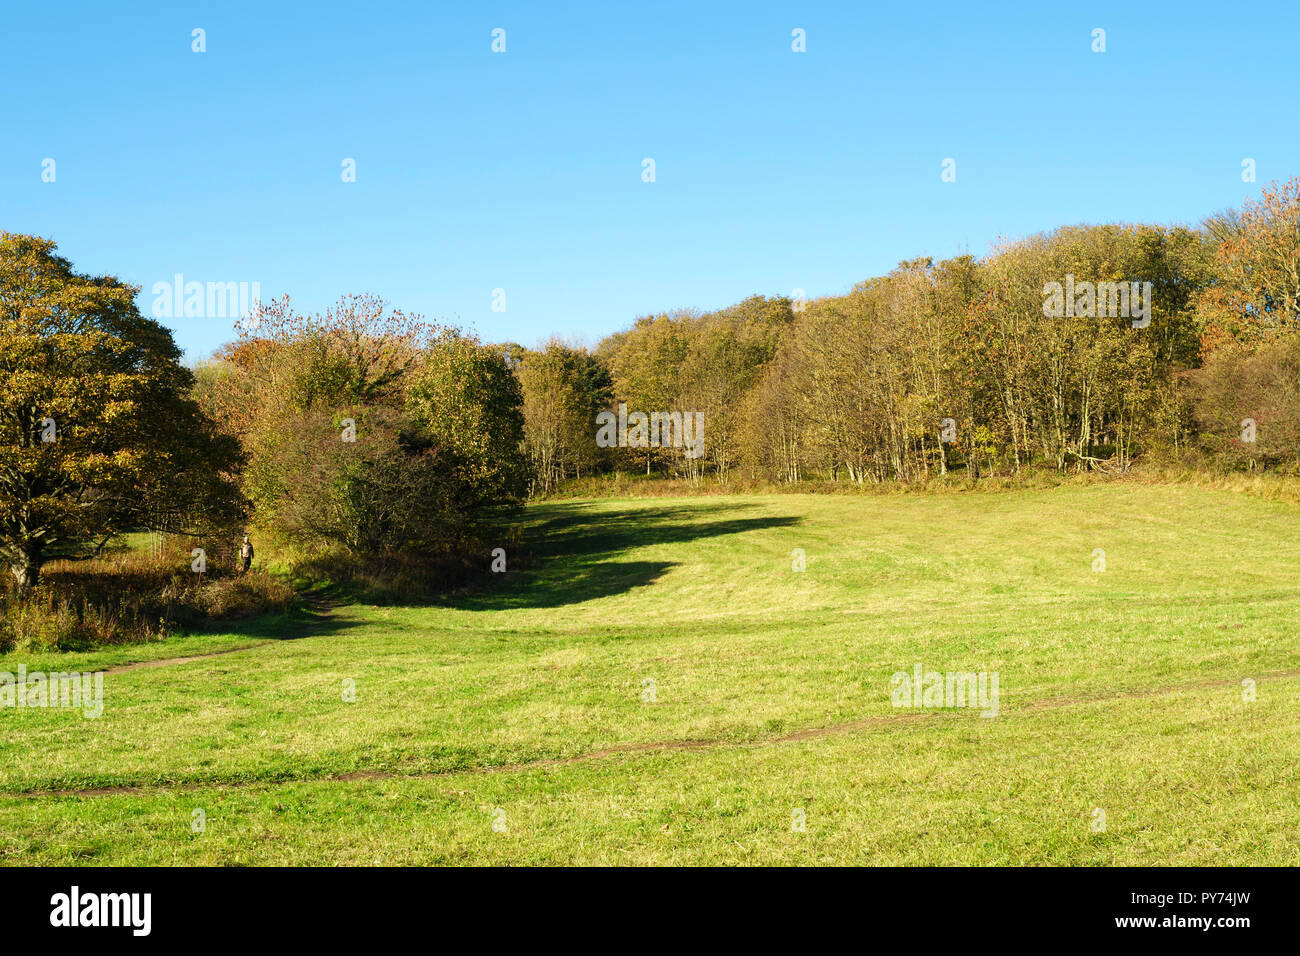 Hawthorn Dene Meadows, a Site of Special Scientific Interest, Hawthorn, Co. Durham, England, UK - Stock Image